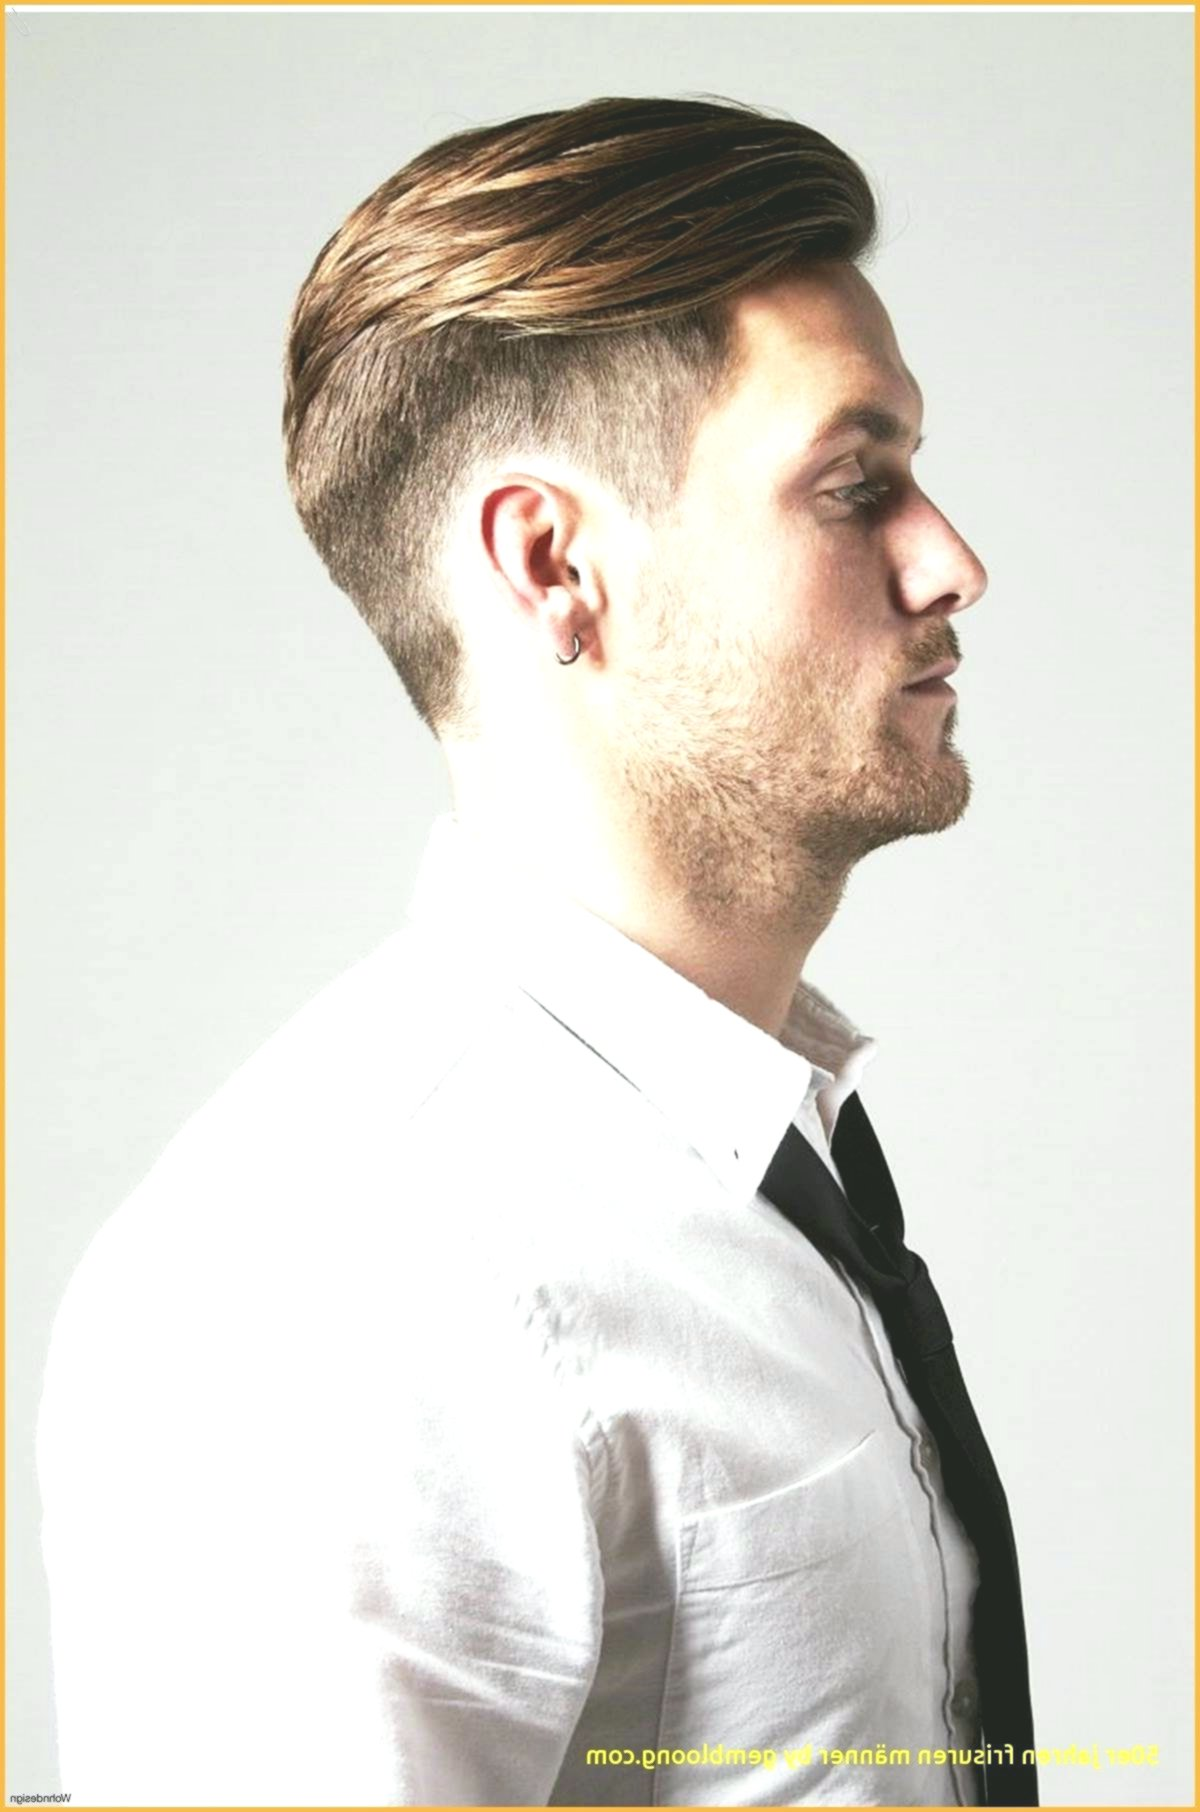 lovely trend hairstyles men 2018 decoration-New trend hairstyles men 2018 ideas